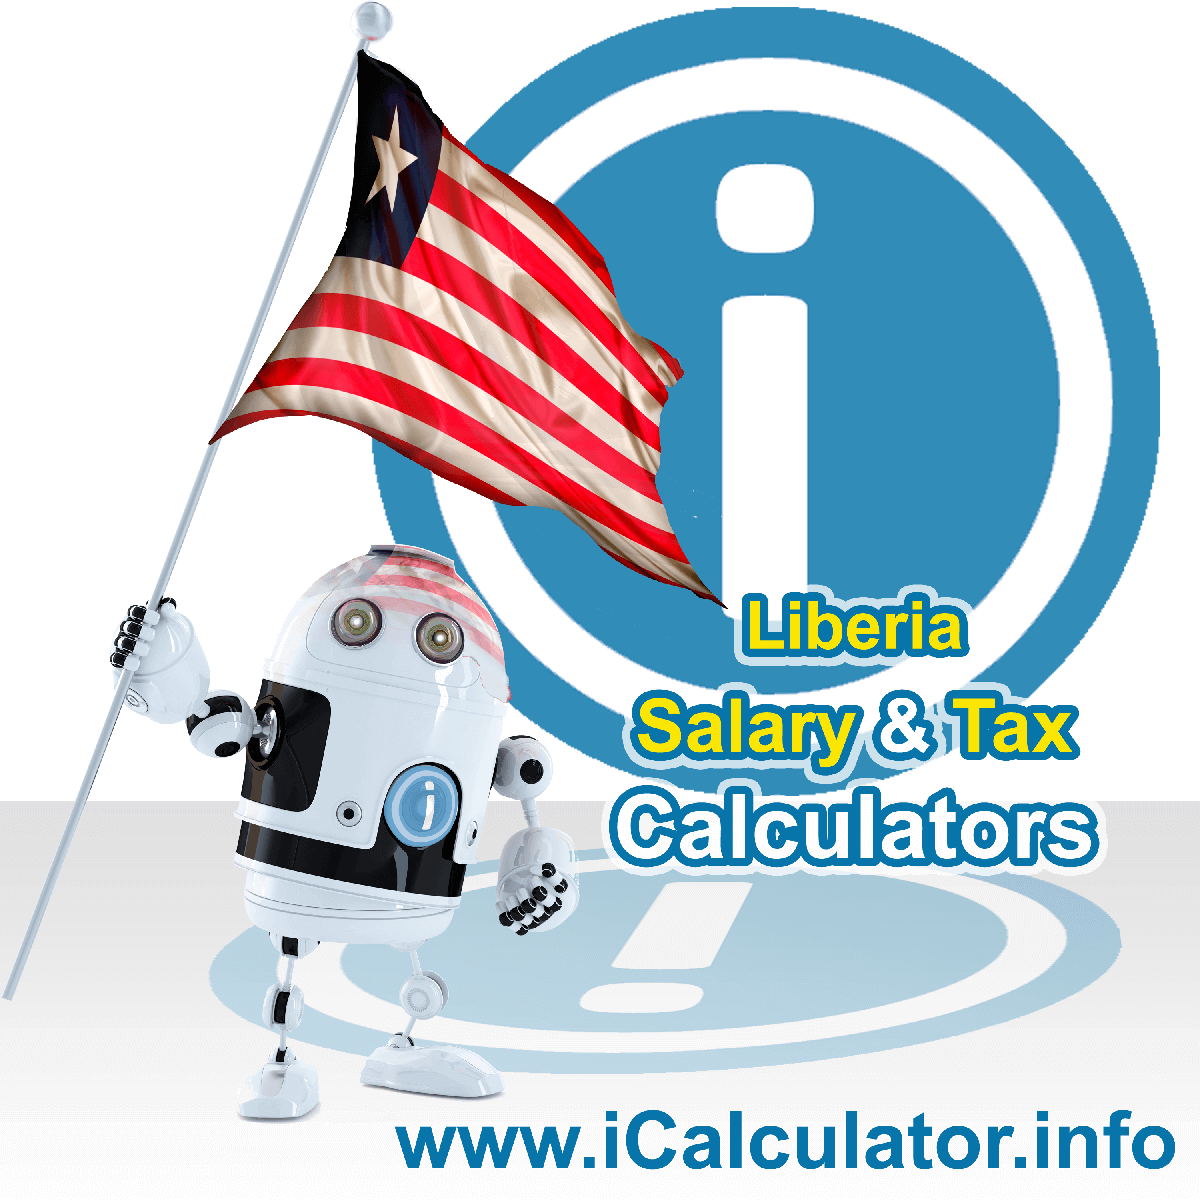 Liberia Wage Calculator. This image shows the Liberia flag and information relating to the tax formula for the Liberia Tax Calculator